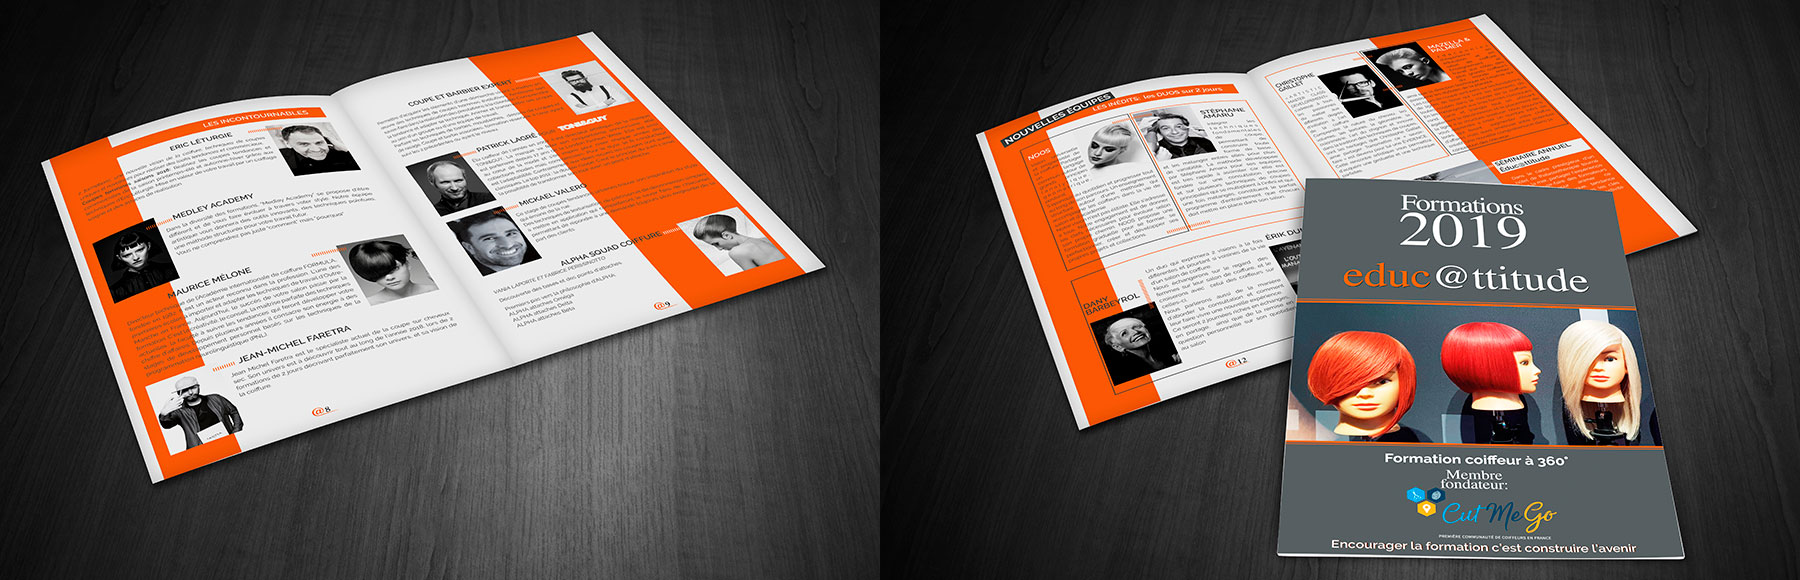 brochure Educattitude 2019 16 pages